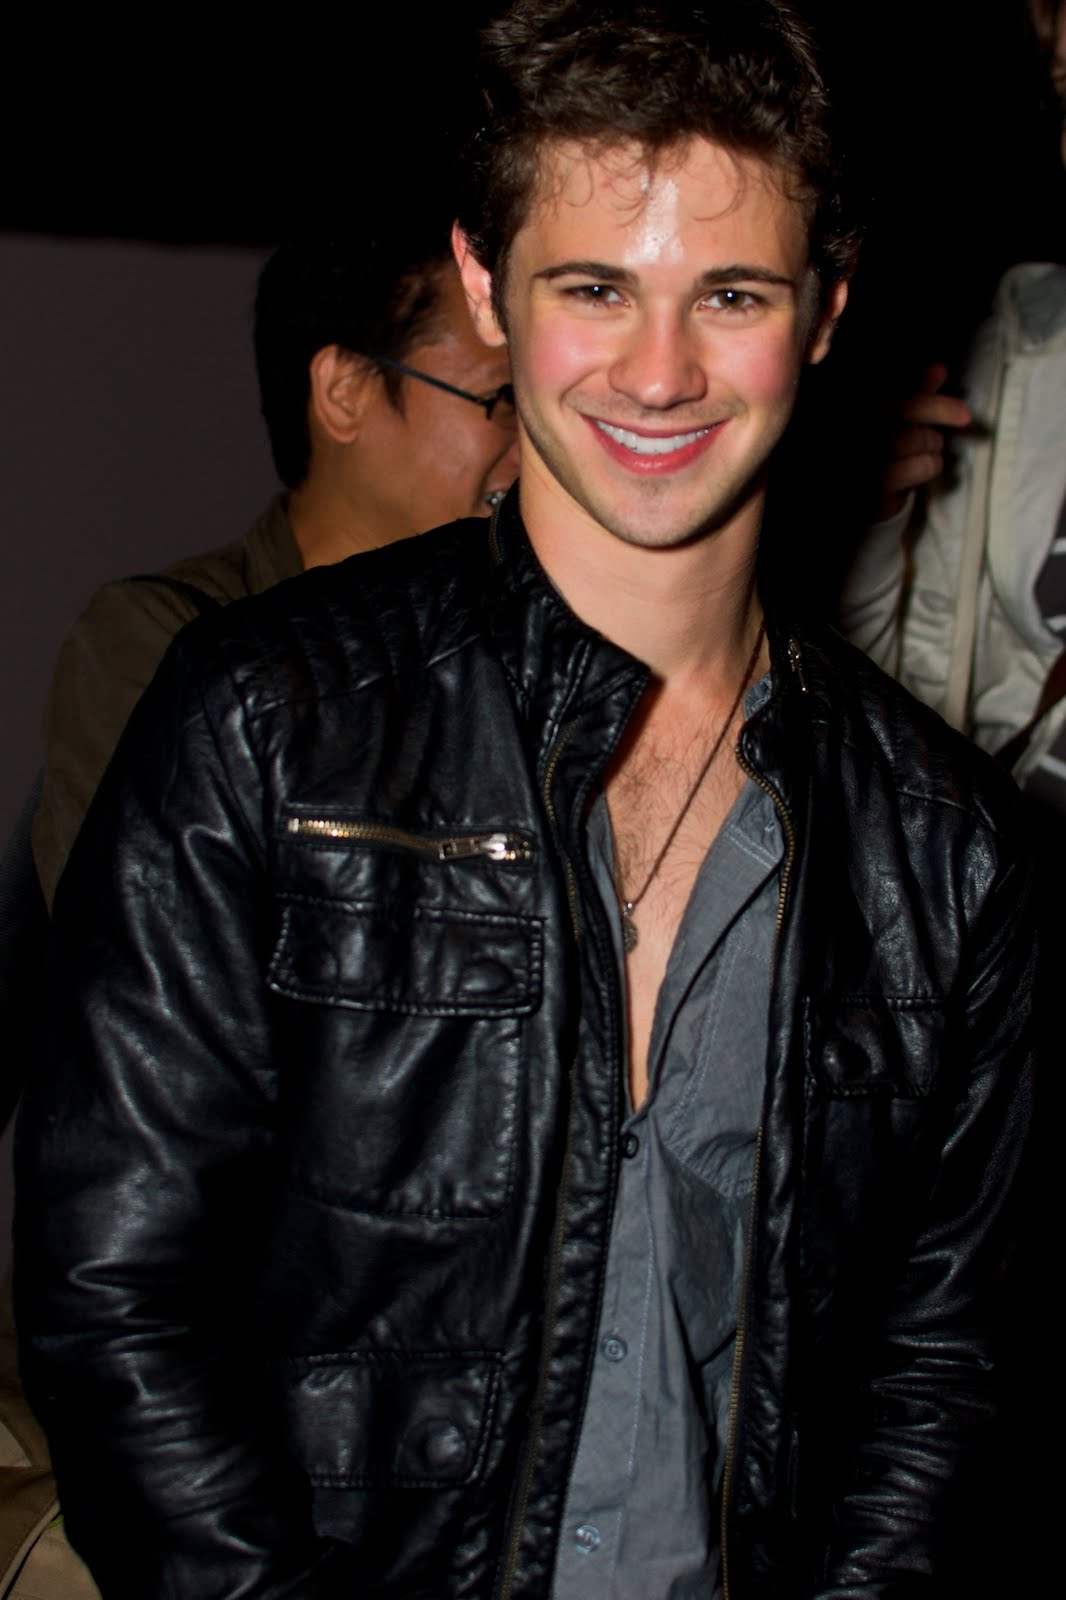 connor paolo revengeconnor paolo twitter, connor paolo girlfriend list, connor paolo instagram, connor paolo 2007, connor paolo, connor paolo and taylor momsen, connor paolo and adelaide kane, connor paolo wiki, connor paolo wikipedia, connor paolo gay in real life, connor paolo girlfriend 2015, connor paolo net worth, connor paolo revenge, connor paolo shirtless, connor paolo imdb, connor paolo height weight, connor paolo es gay